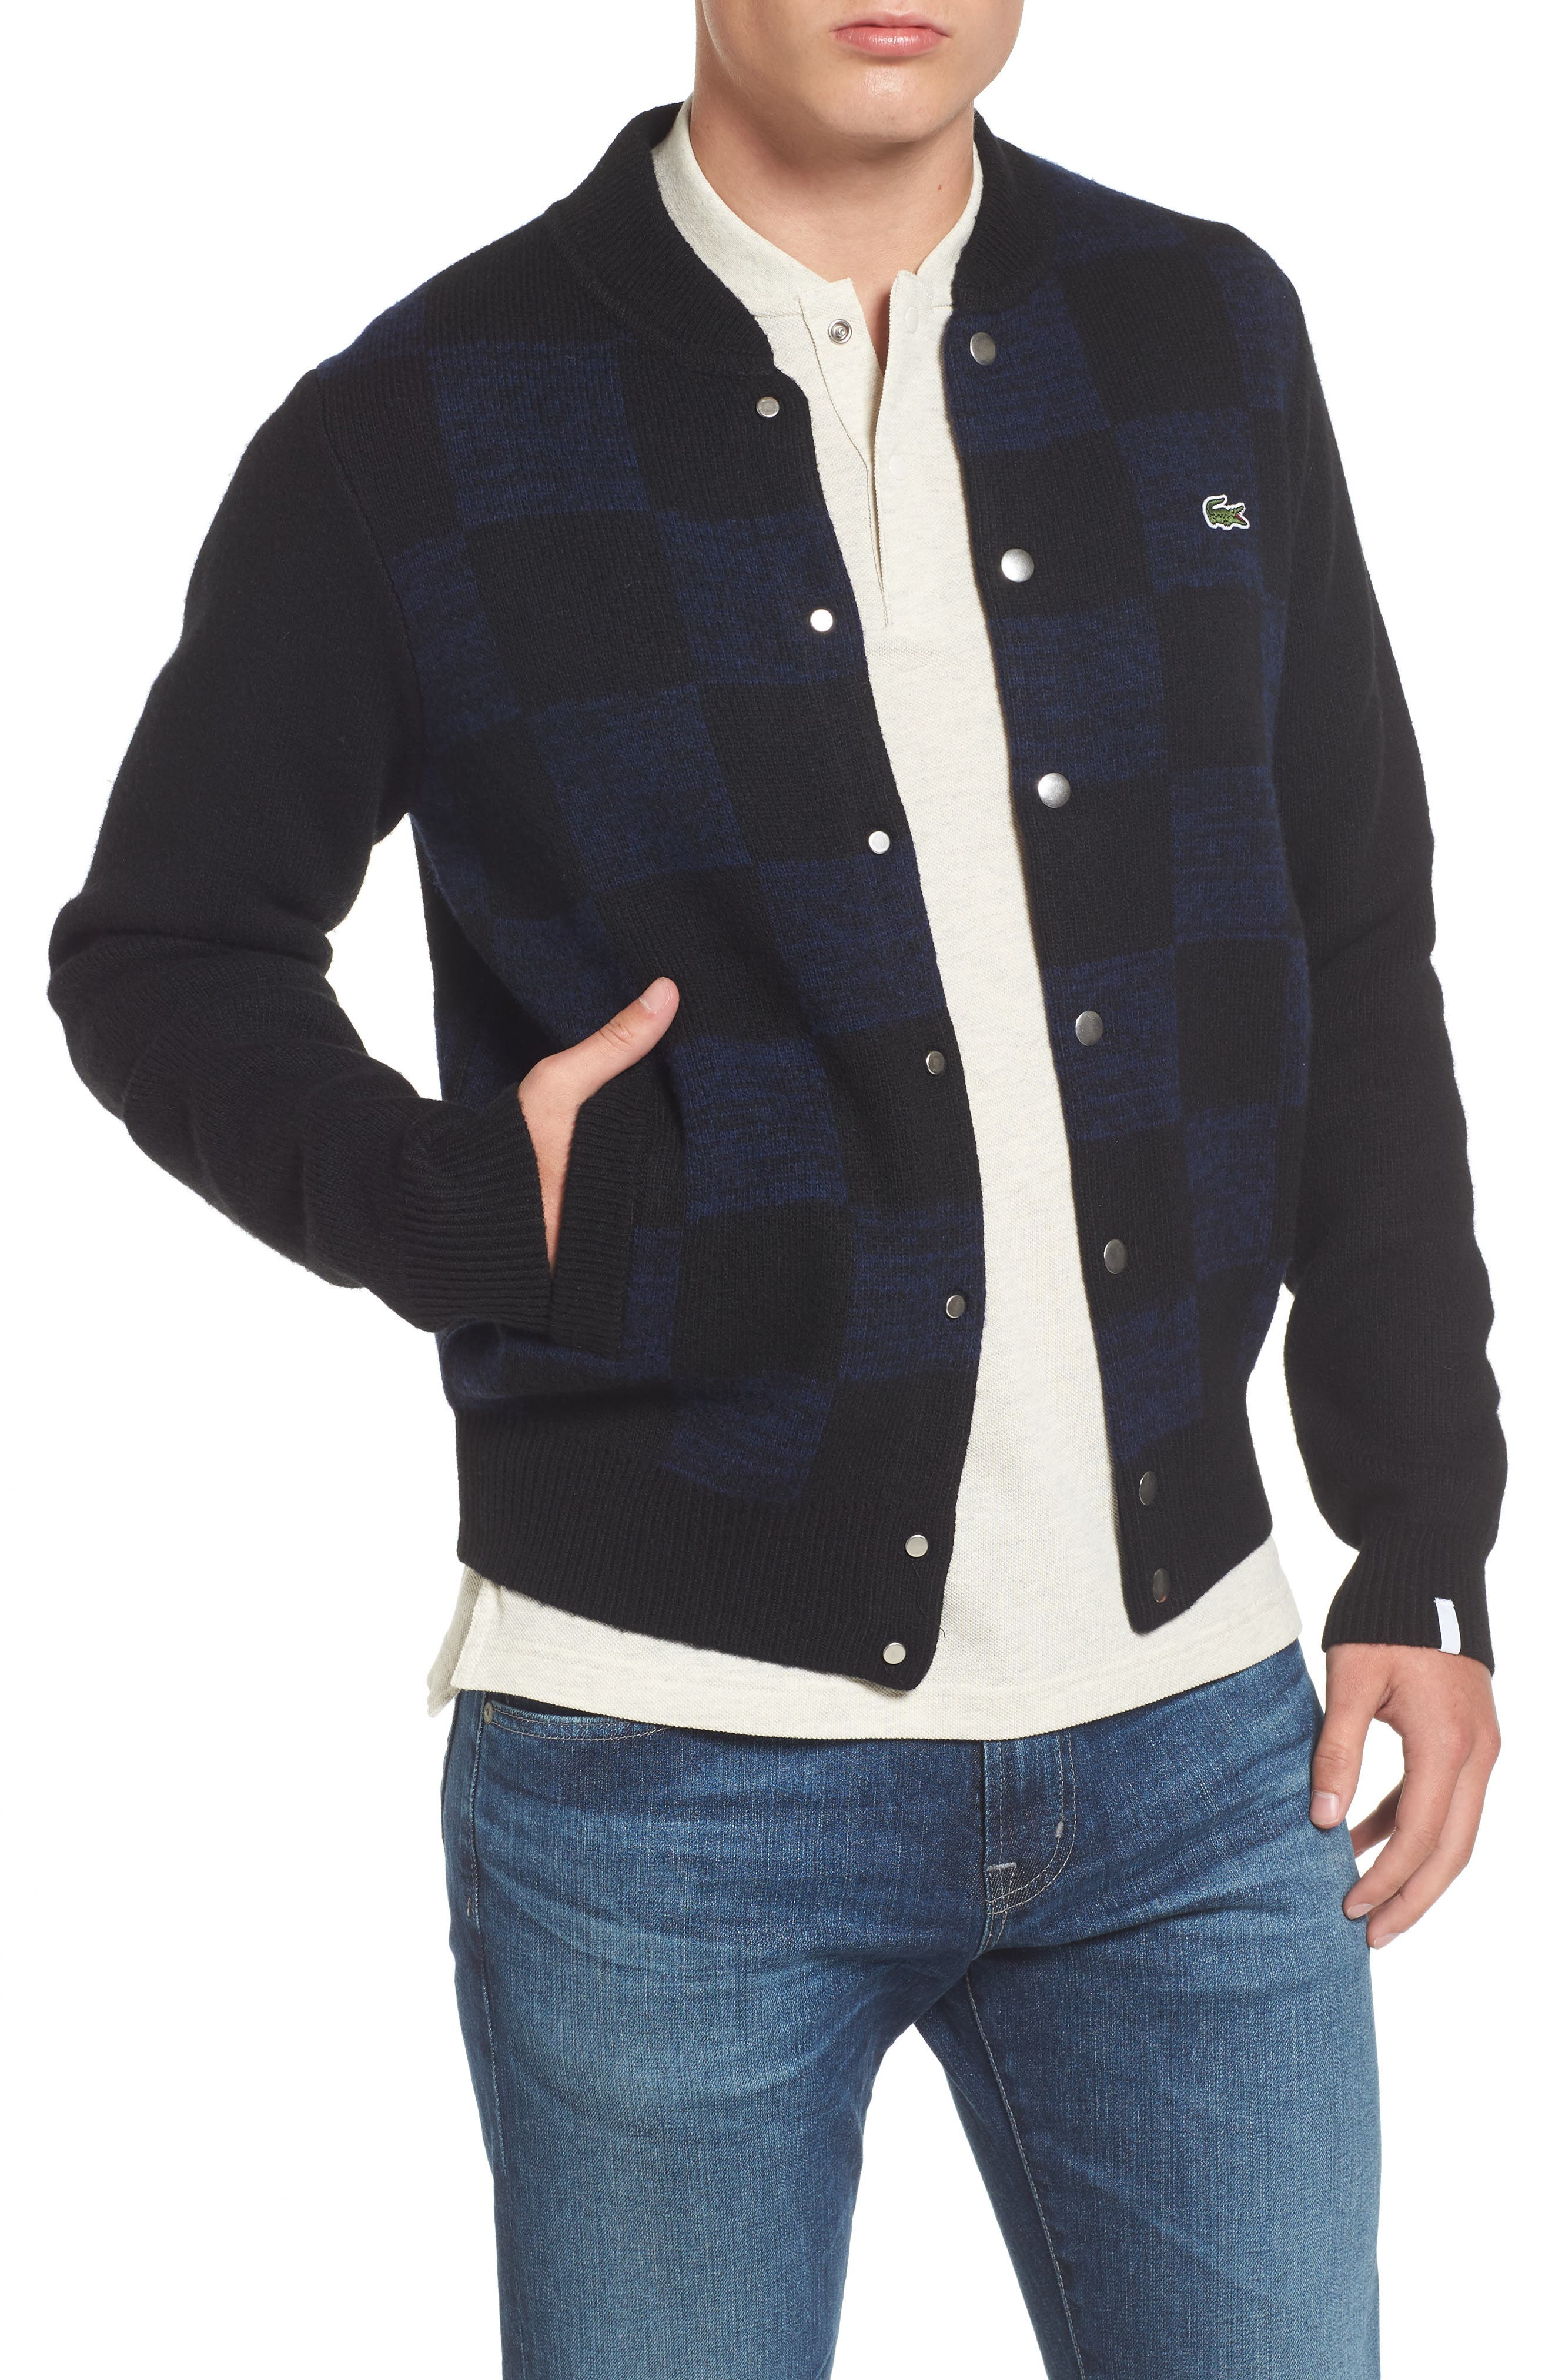 Double Face Check Sweater Jacket,                             Main thumbnail 1, color,                             006